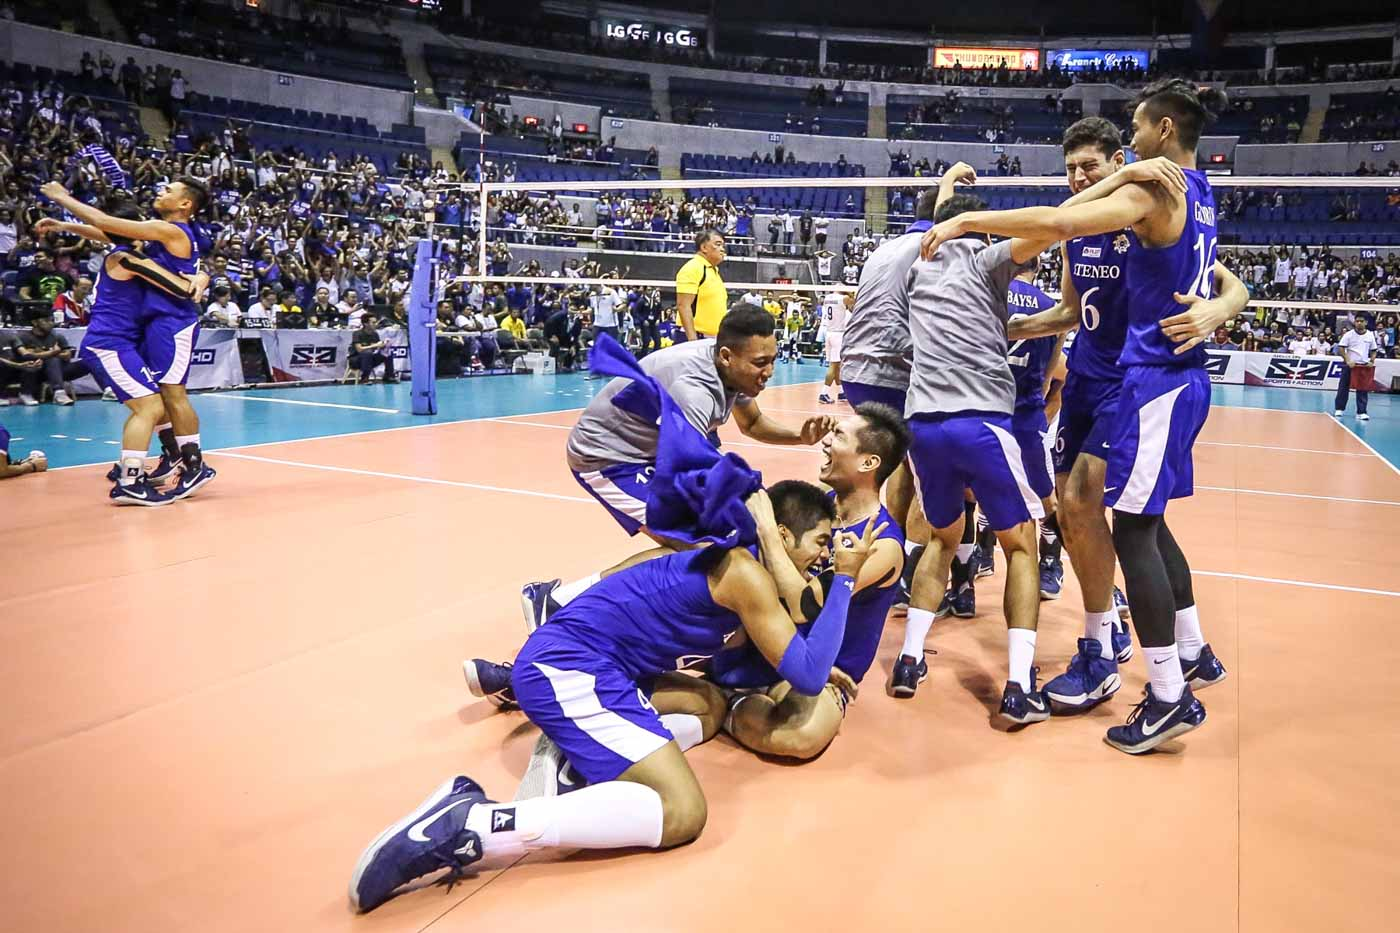 Ateneo Blue Eagles complete 3-peat of men's volleyball title